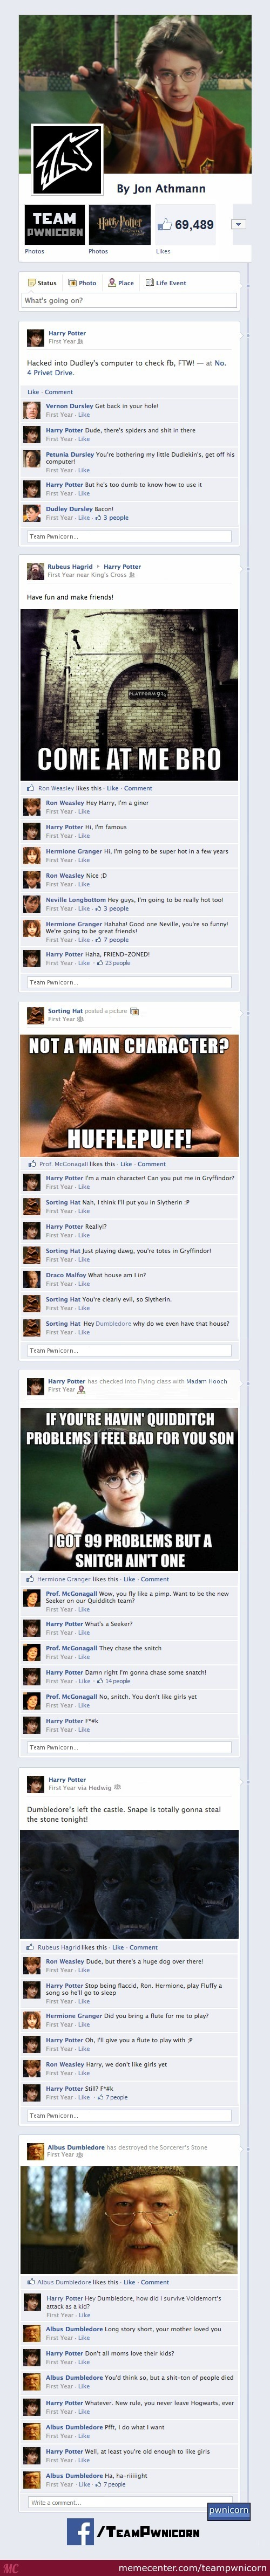 Harry Potter And The Sorcerer's Stone On Facebook